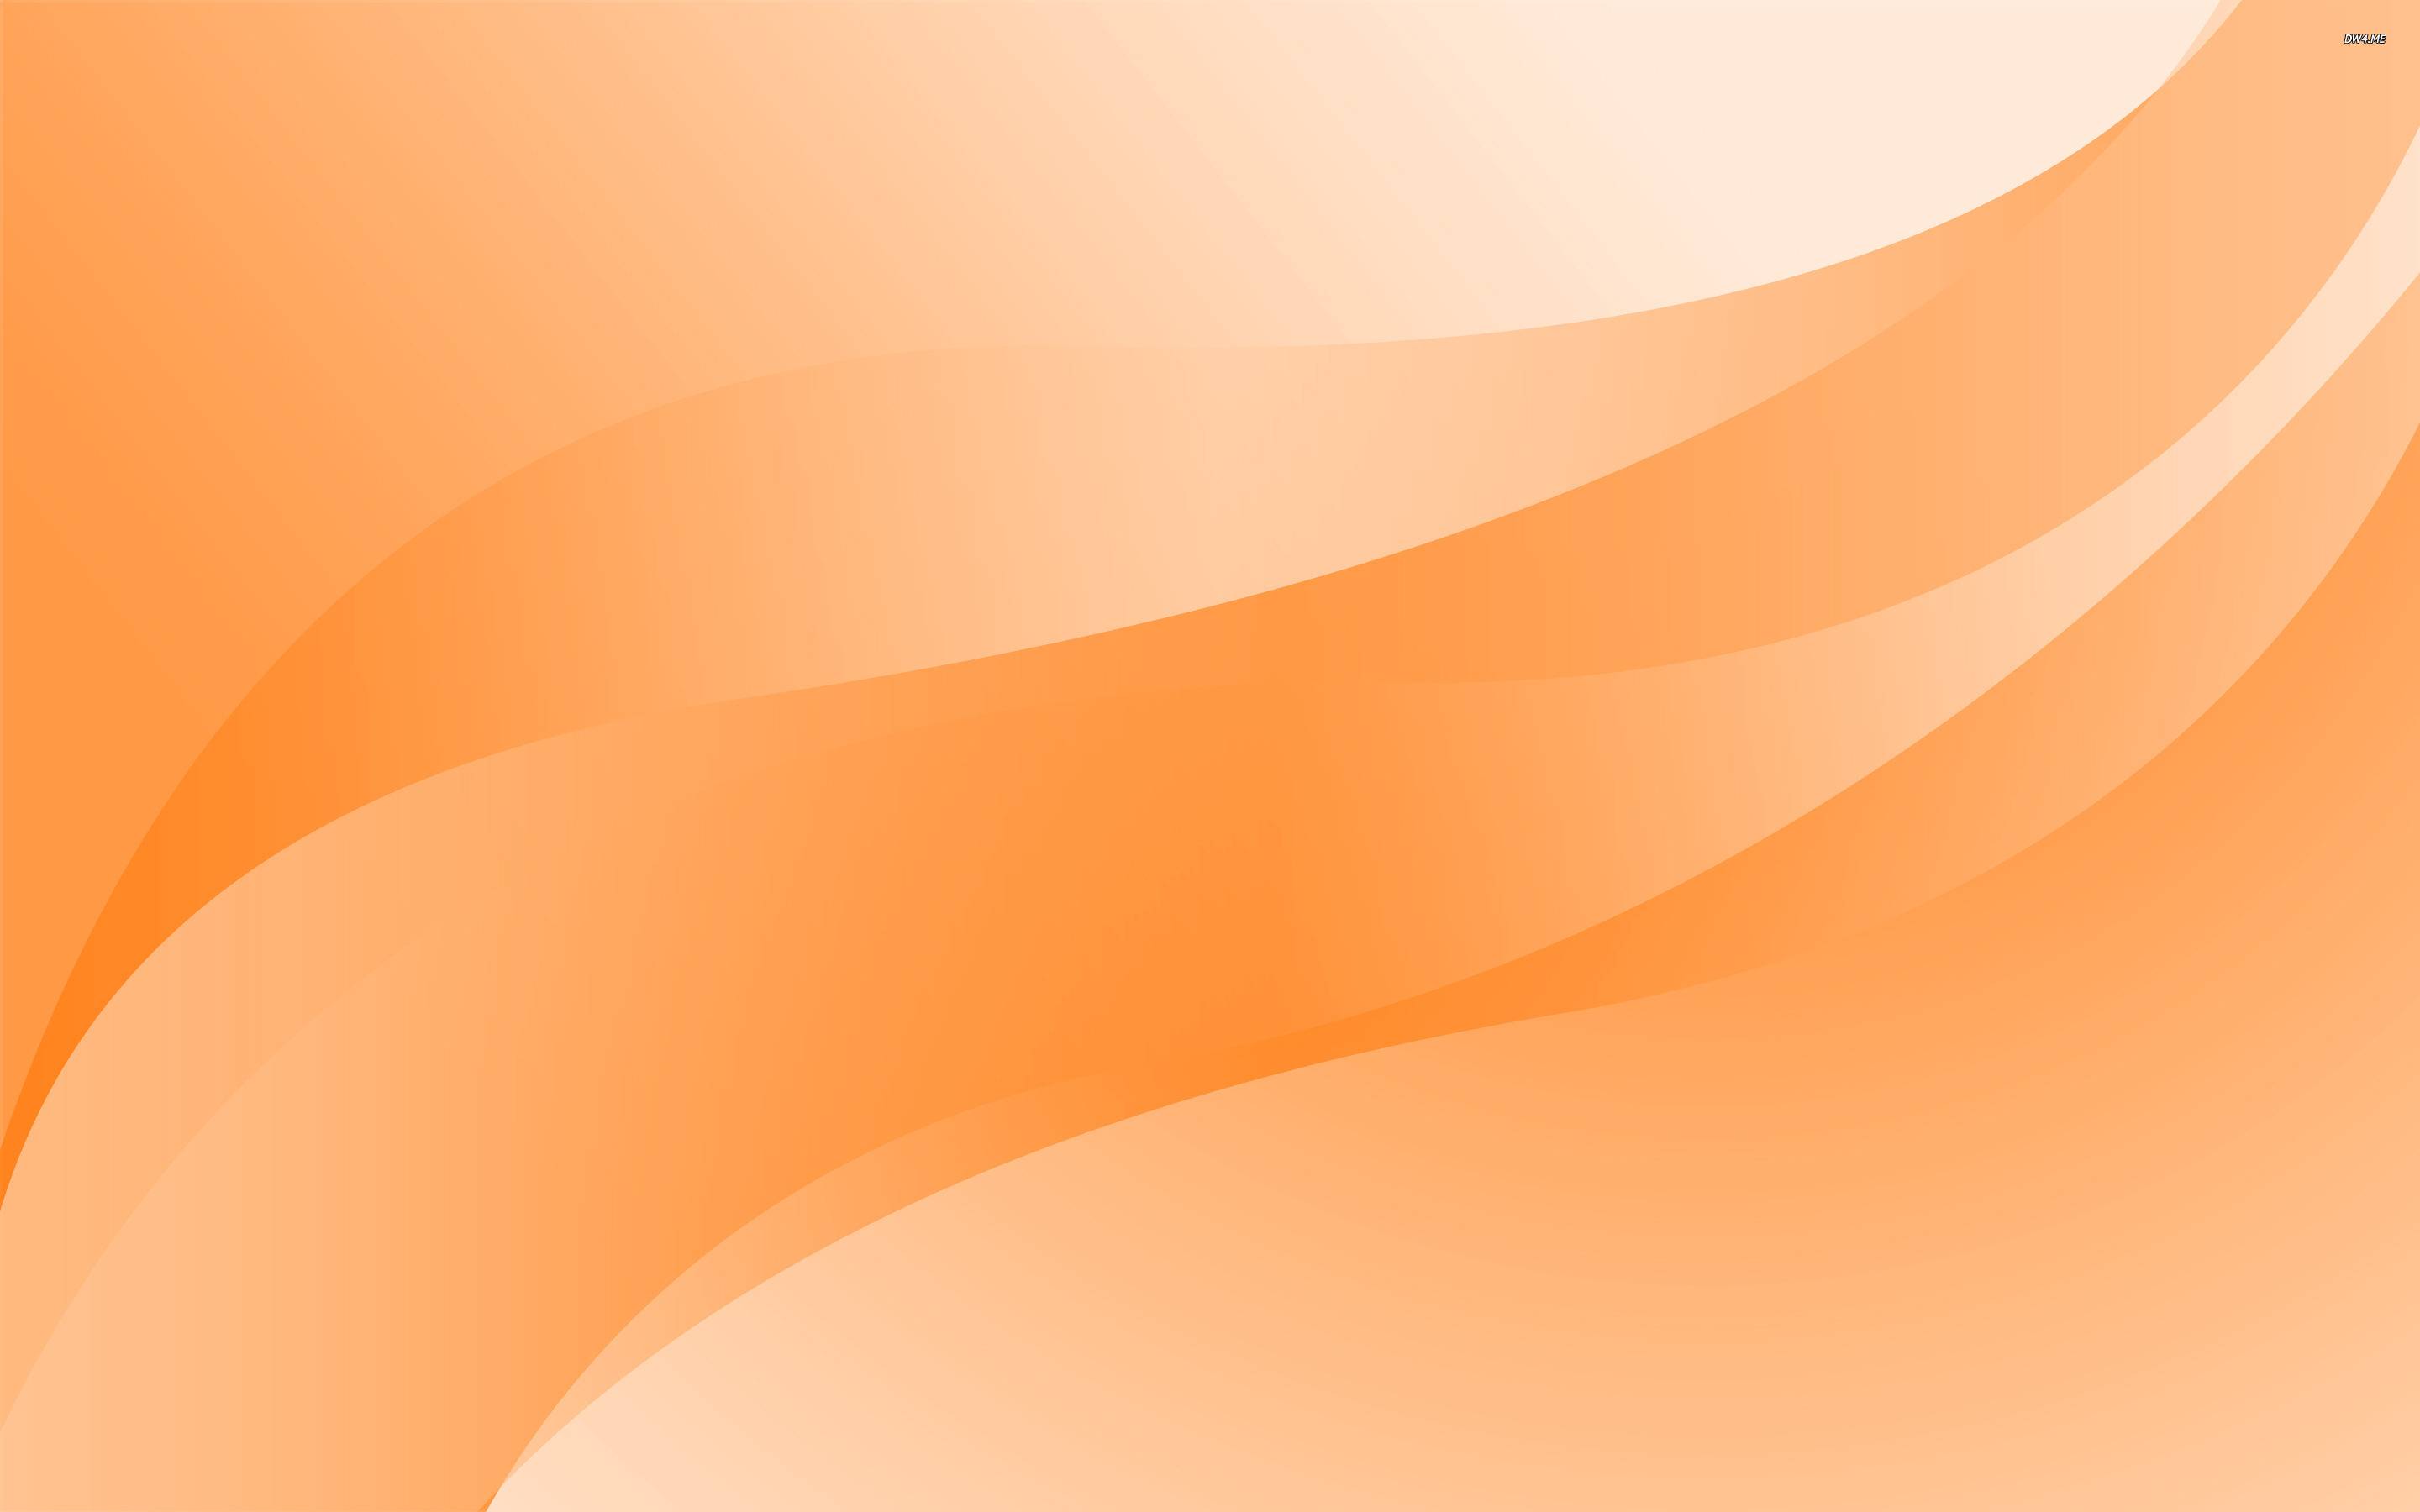 Orange curves wallpaper   Abstract wallpapers   2160 2880x1800